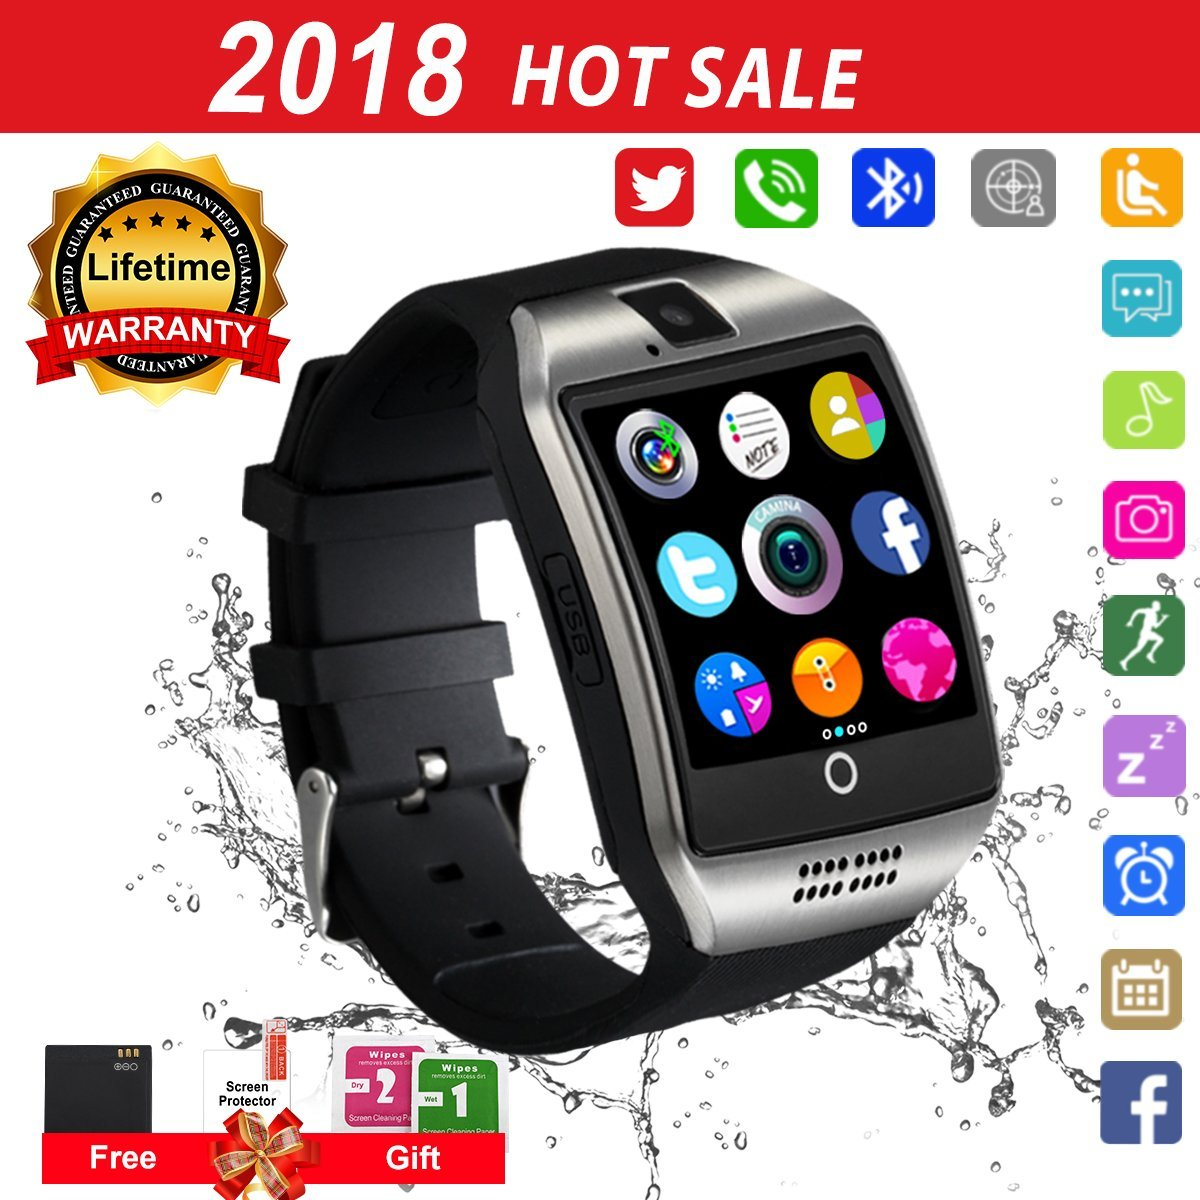 Bluetooth Smart Watch Touchscreen with Camera, Watch Cell Phone with Sim Card Slot,Smart Wrist Watch,Waterproof Smartwatch Phone for Android Samsung IOS Iphone 7 6S Men Women Kids